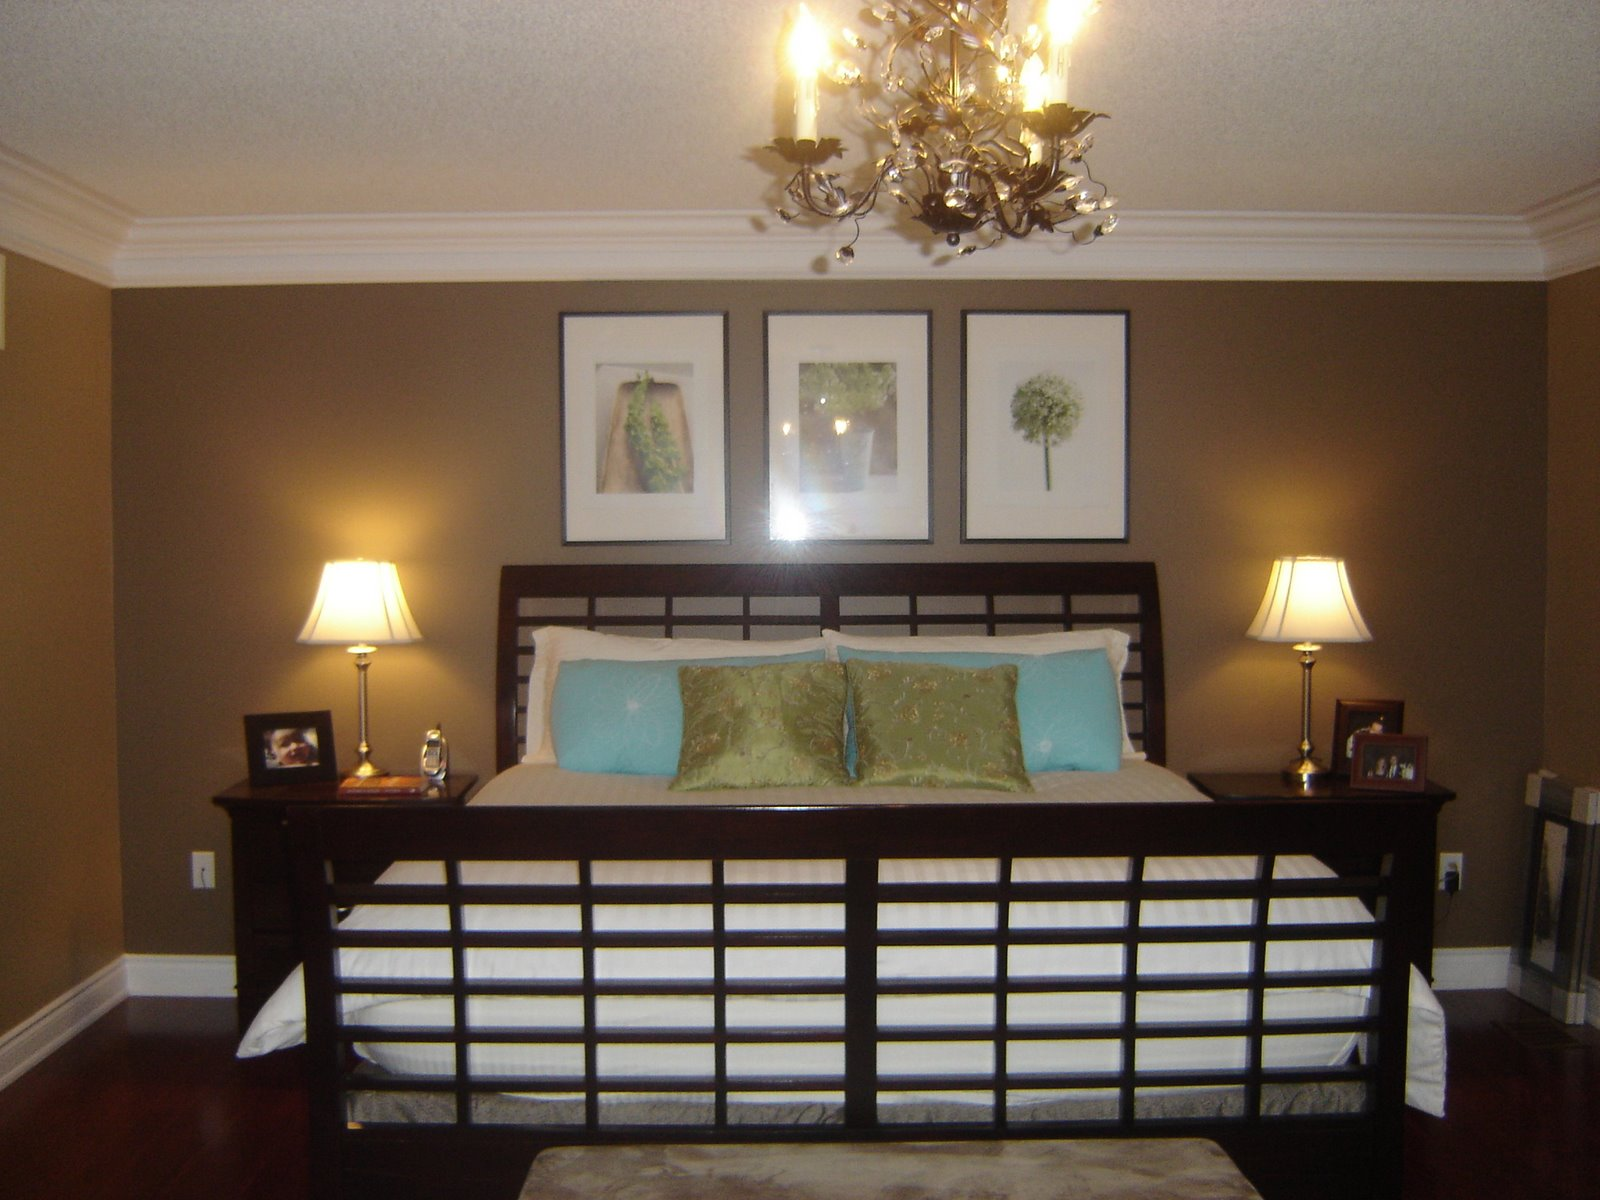 Paint ideas for bedrooms with accent wall - Paint Ideas For Bedrooms With Accent Wall Mark Cooper Research